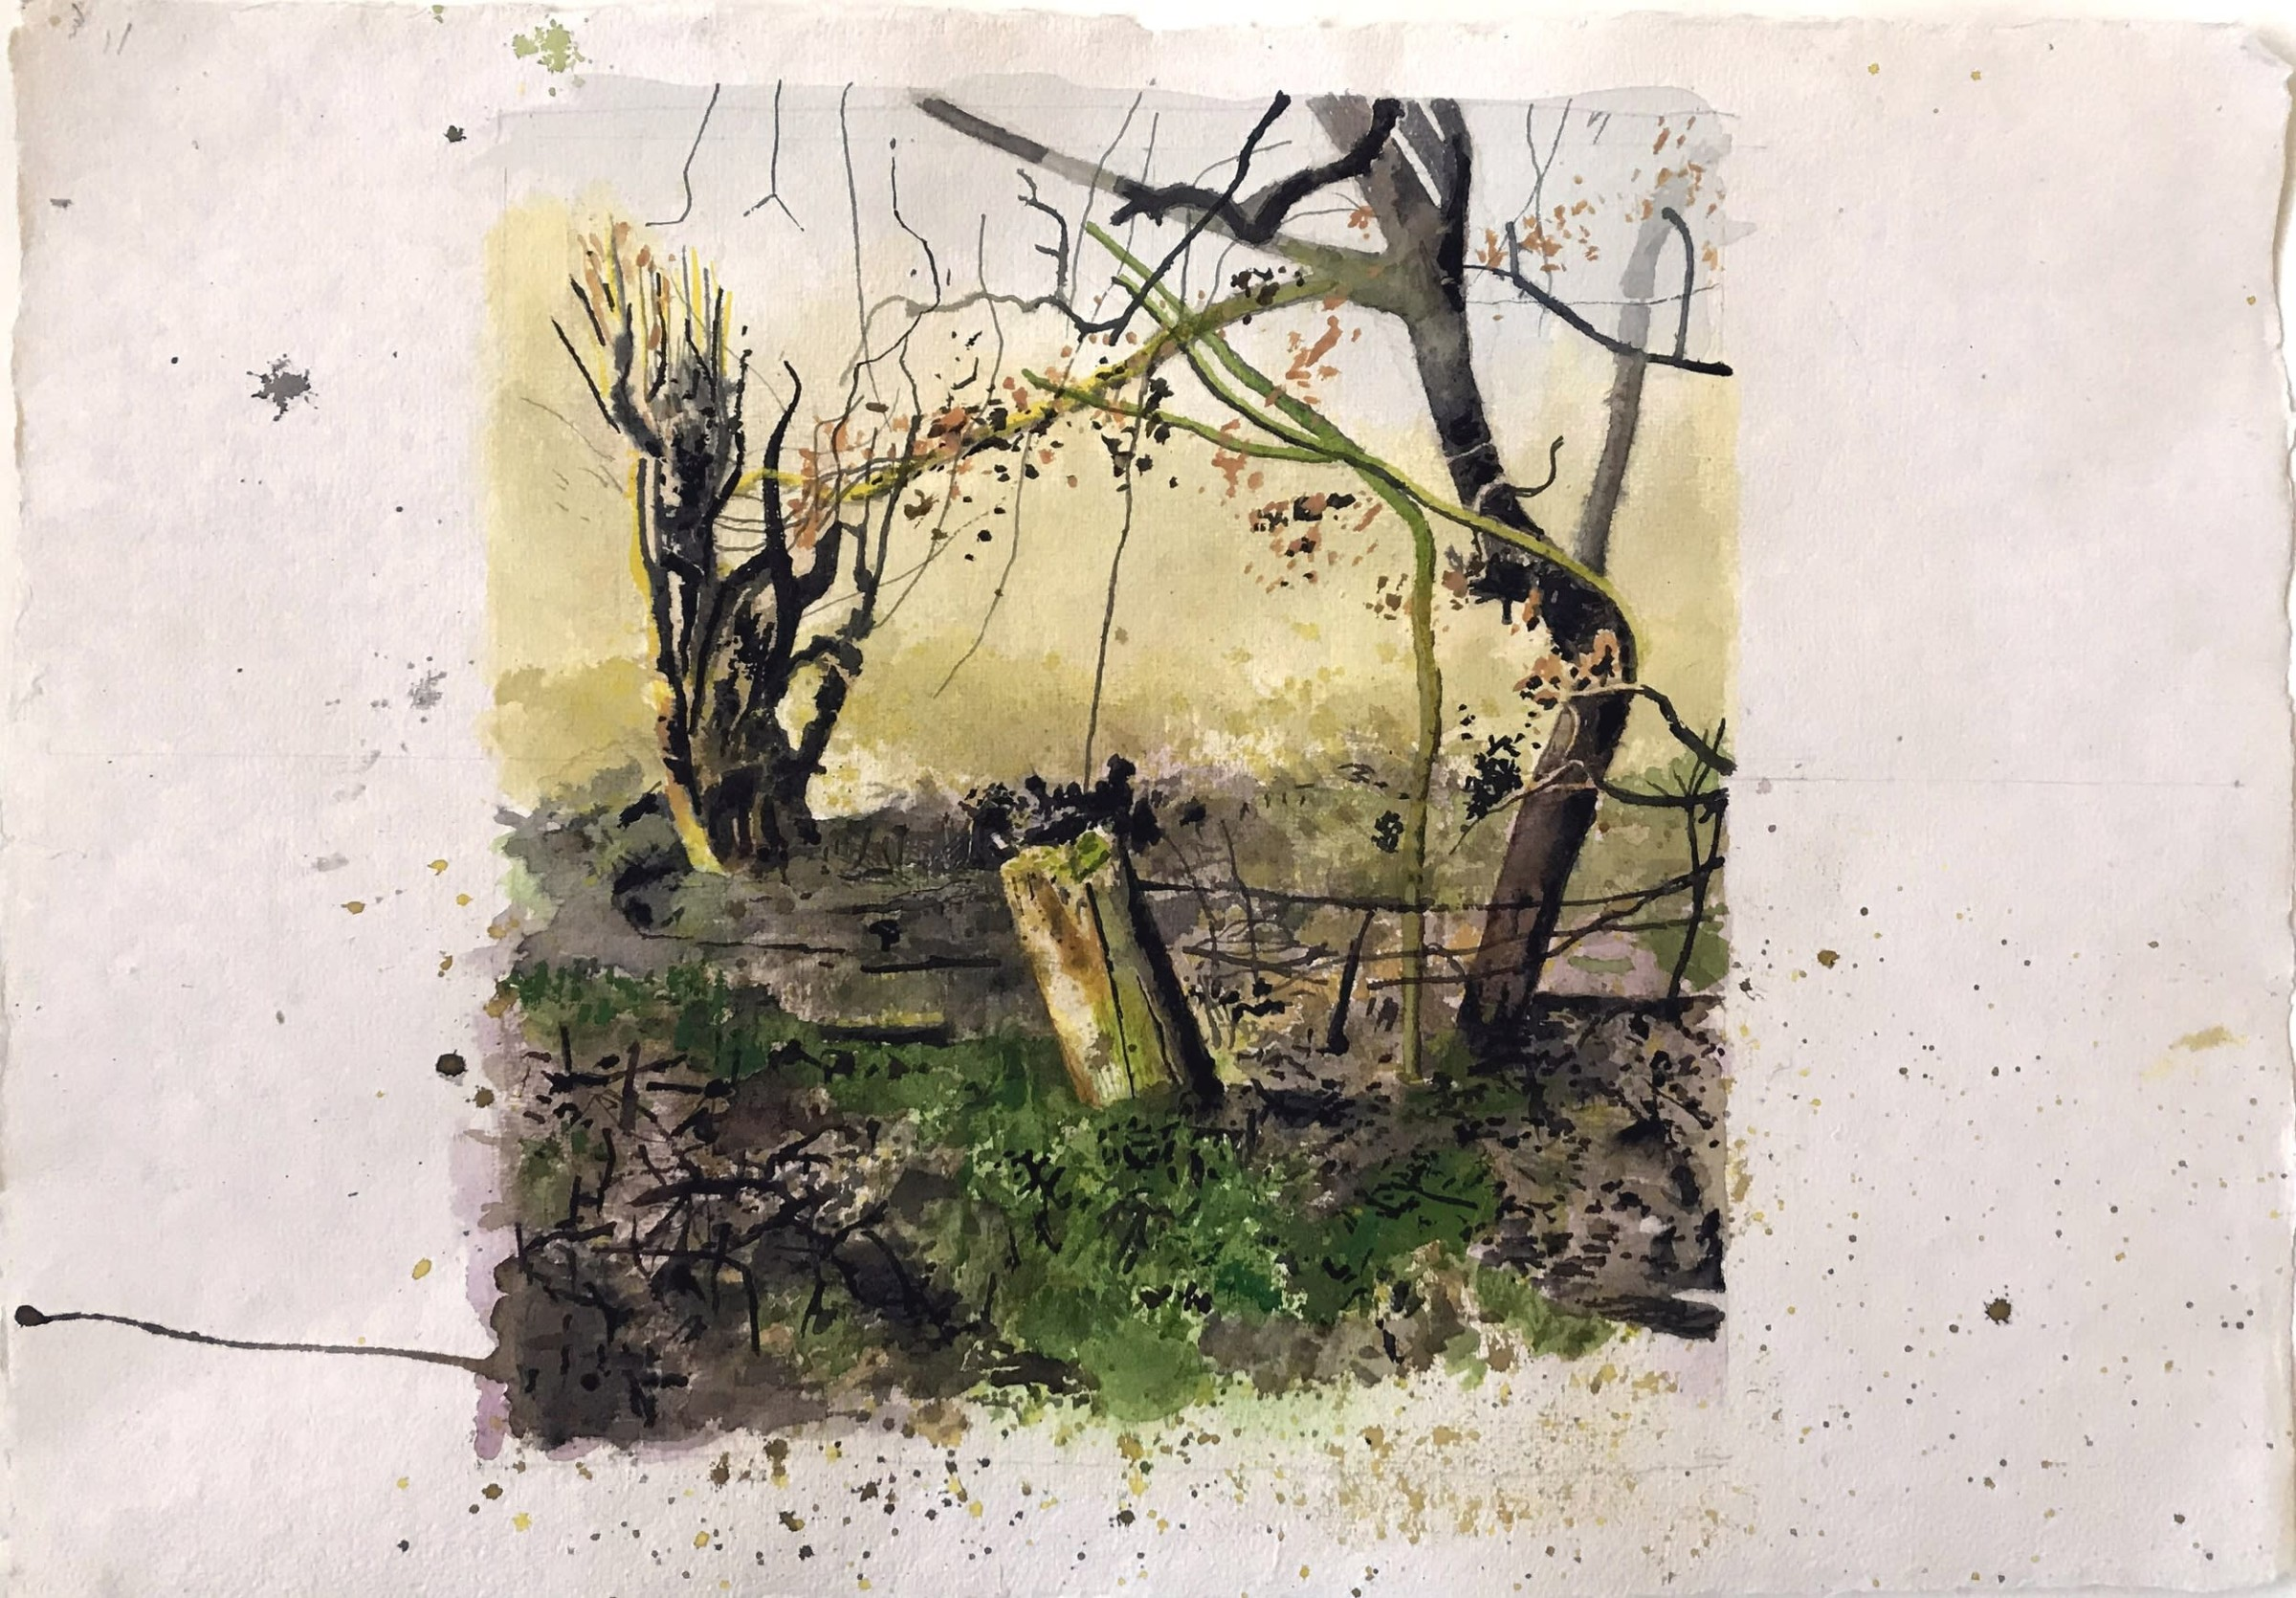 """<span class=""""link fancybox-details-link""""><a href=""""/artists/88-iain-nicholls/works/12120-iain-nicholls-elsecar-cropped-trees-study-1/"""">View Detail Page</a></span><div class=""""artist""""><span class=""""artist""""><strong>Iain Nicholls</strong></span></div><div class=""""title""""><em>Elsecar Cropped Trees Study 1</em></div><div class=""""medium"""">watercolour on paper mounted on board</div><div class=""""dimensions"""">Frame: 42 x 60 cm<br /> Artwork: 38 x 55 cm</div><div class=""""price"""">£420.00</div>"""